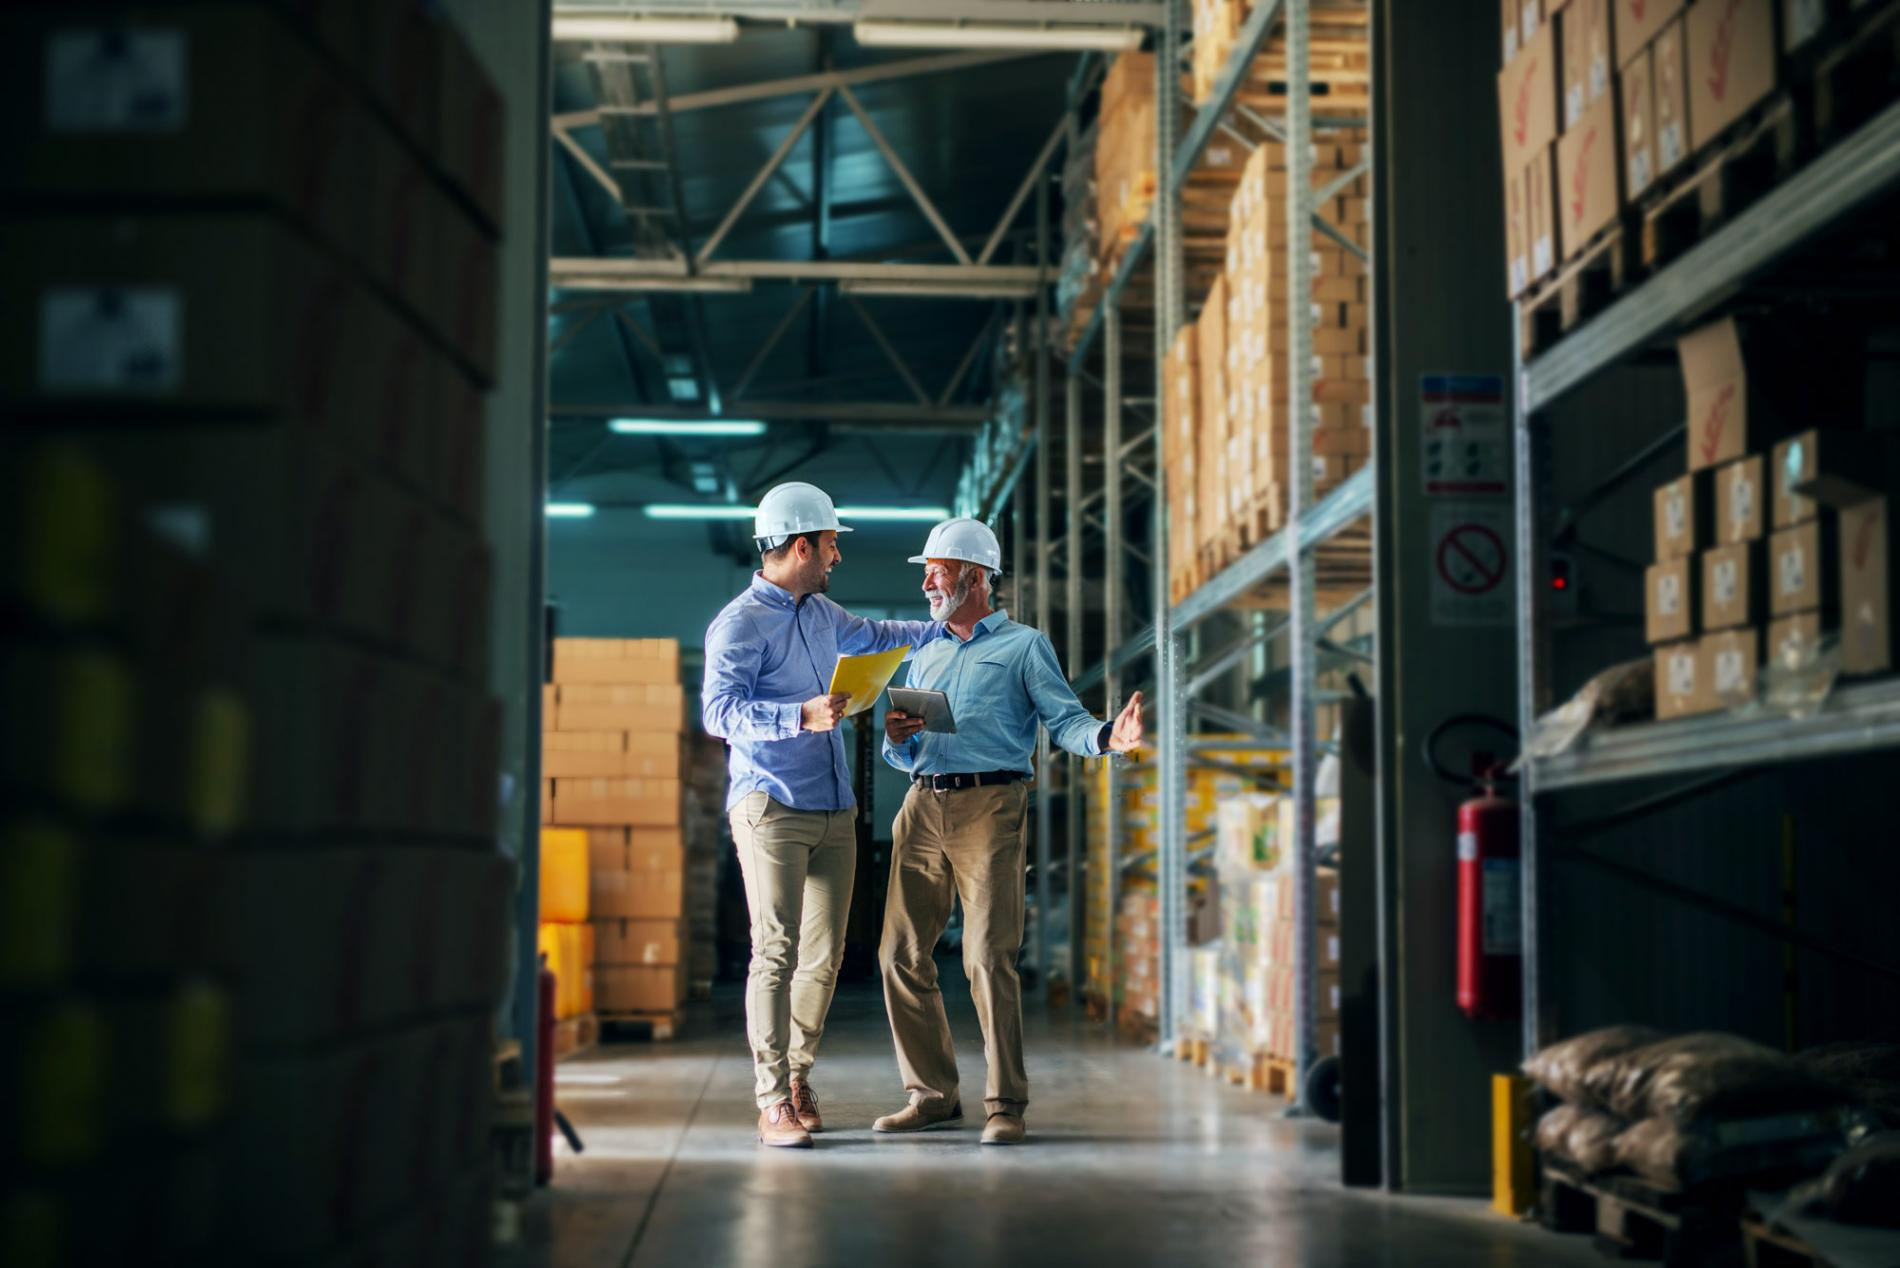 Two men laughing and looking at each other in a warehouse